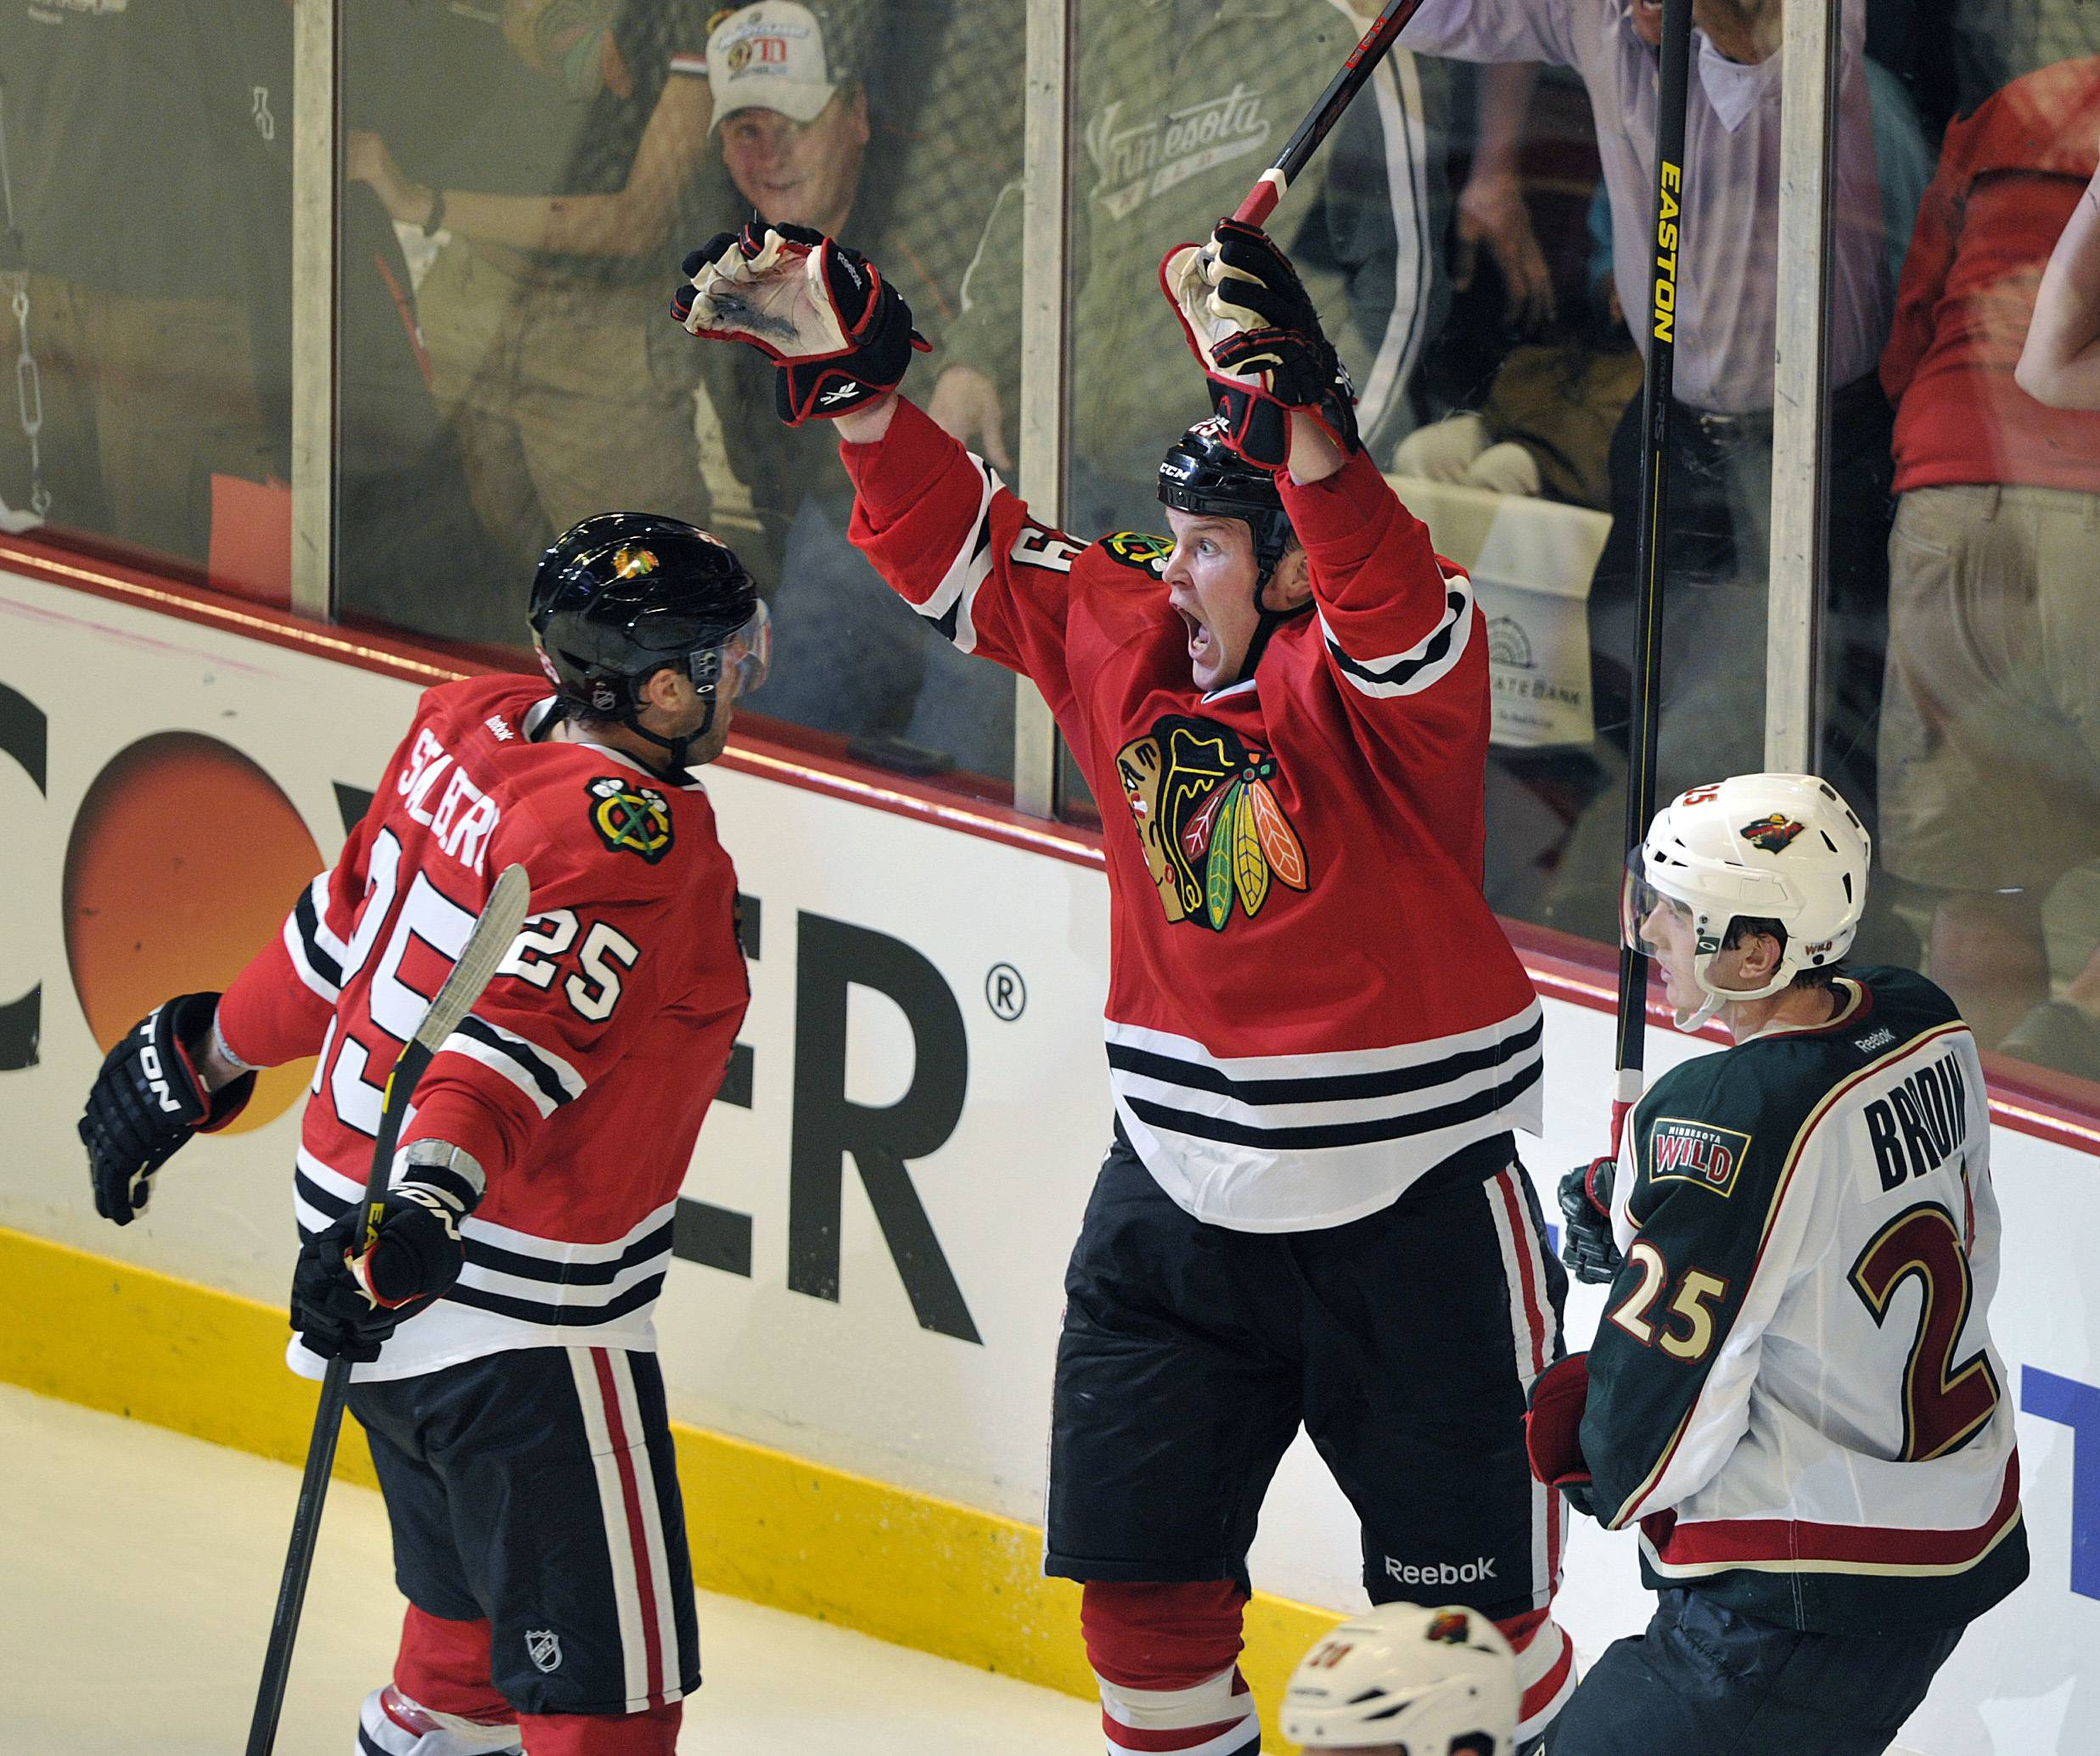 Chicago Blackhawks' Viktor Stalberg (25) celebrates with Bryan Bickell after Bickell's game-winning goal in overtime, as Minnesota Wild's Jonas Brodin (25) skates by in Game 1 of an NHL hockey Stanley Cup playoff series Tuesday, April 30, 2013, in Chicago. The Blackhawks defeated the Wild 2-1.